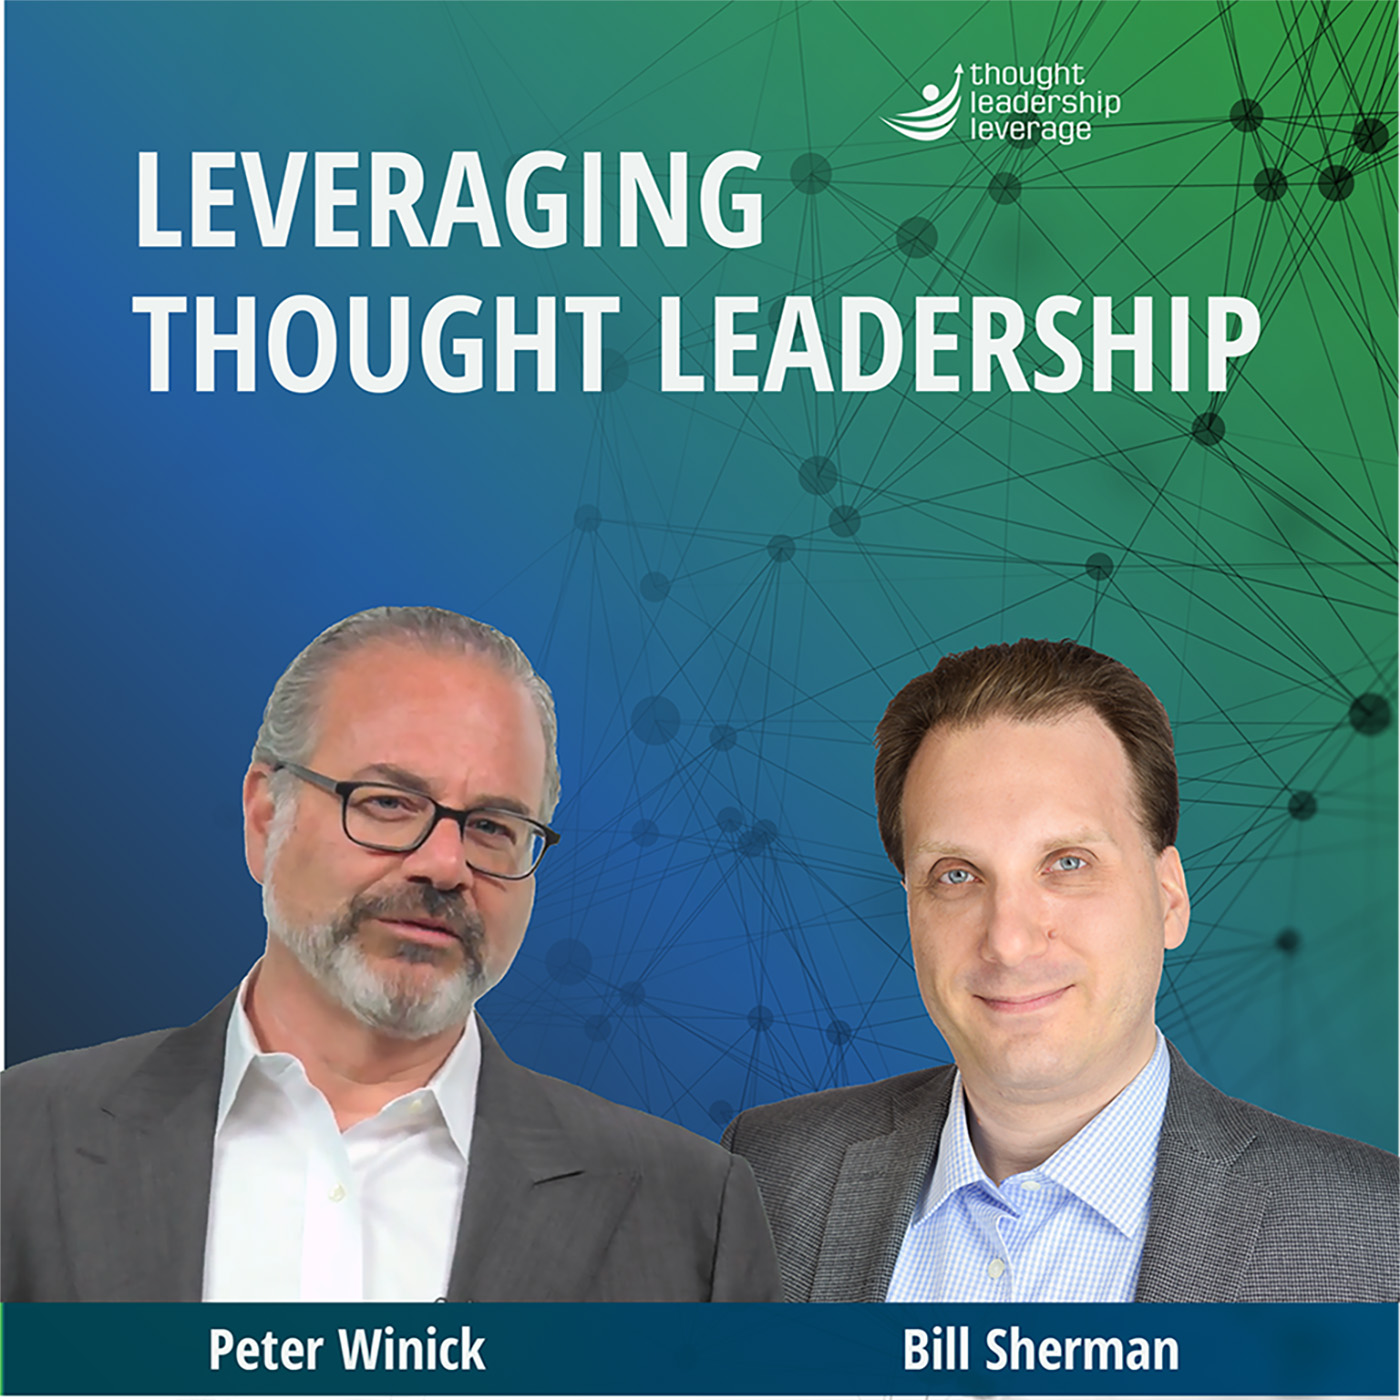 Leveraging Thought Leadership podcast show image